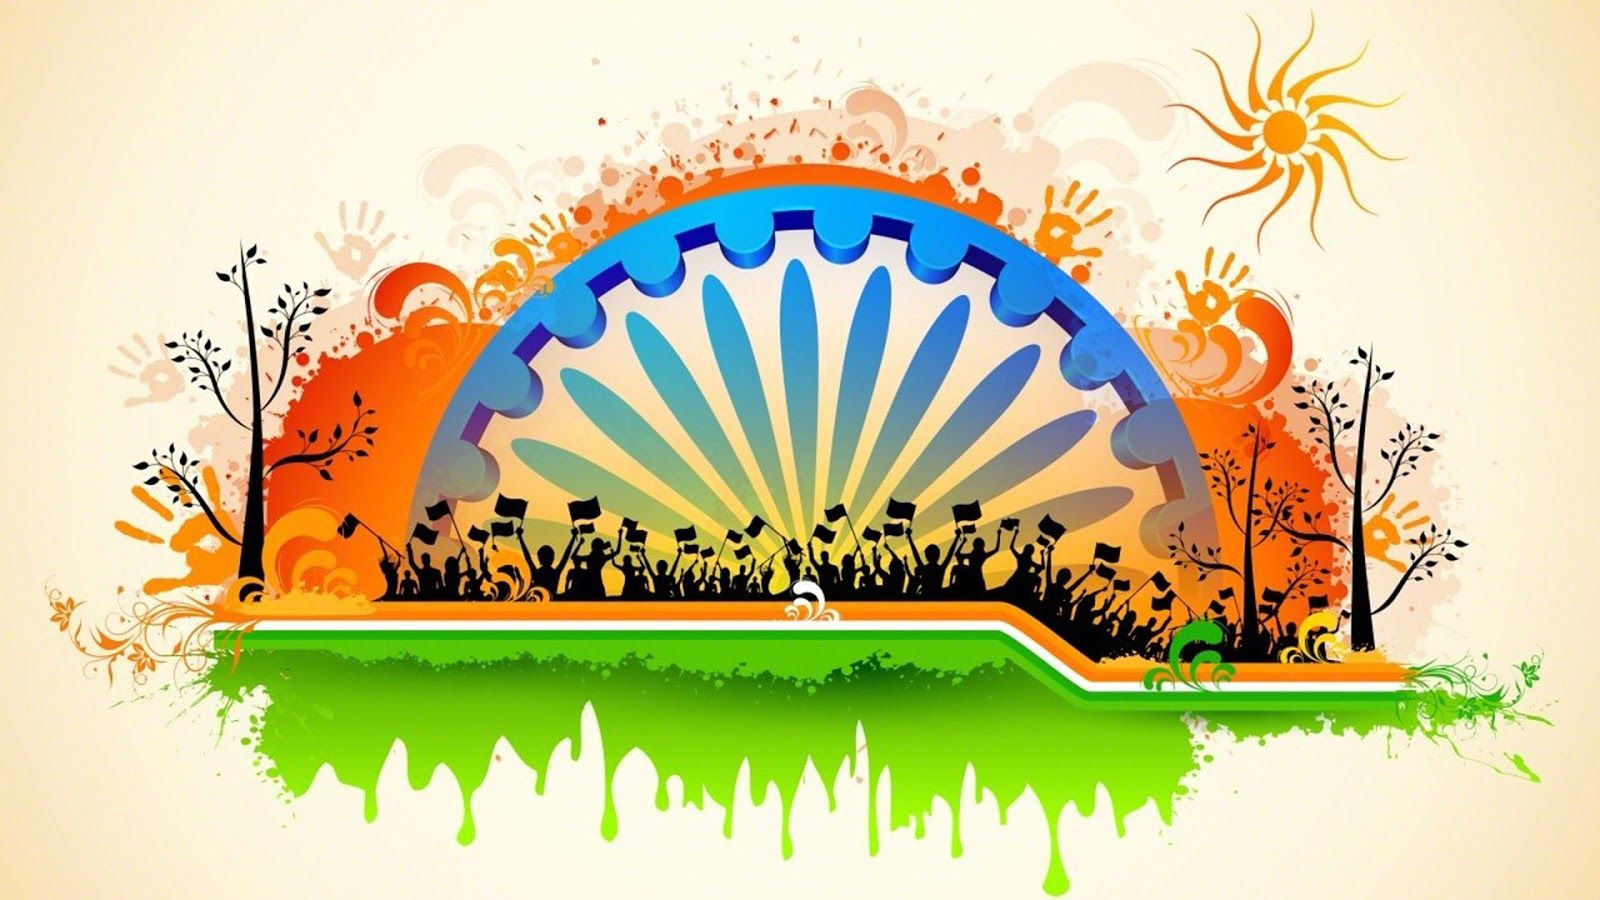 Happy Republic Day Wallpapers Hd Download Free 1080p Happy Republic Day Wallpaper Republic Day India Republic Day Images Hd Hd wallpapers india happy republic day